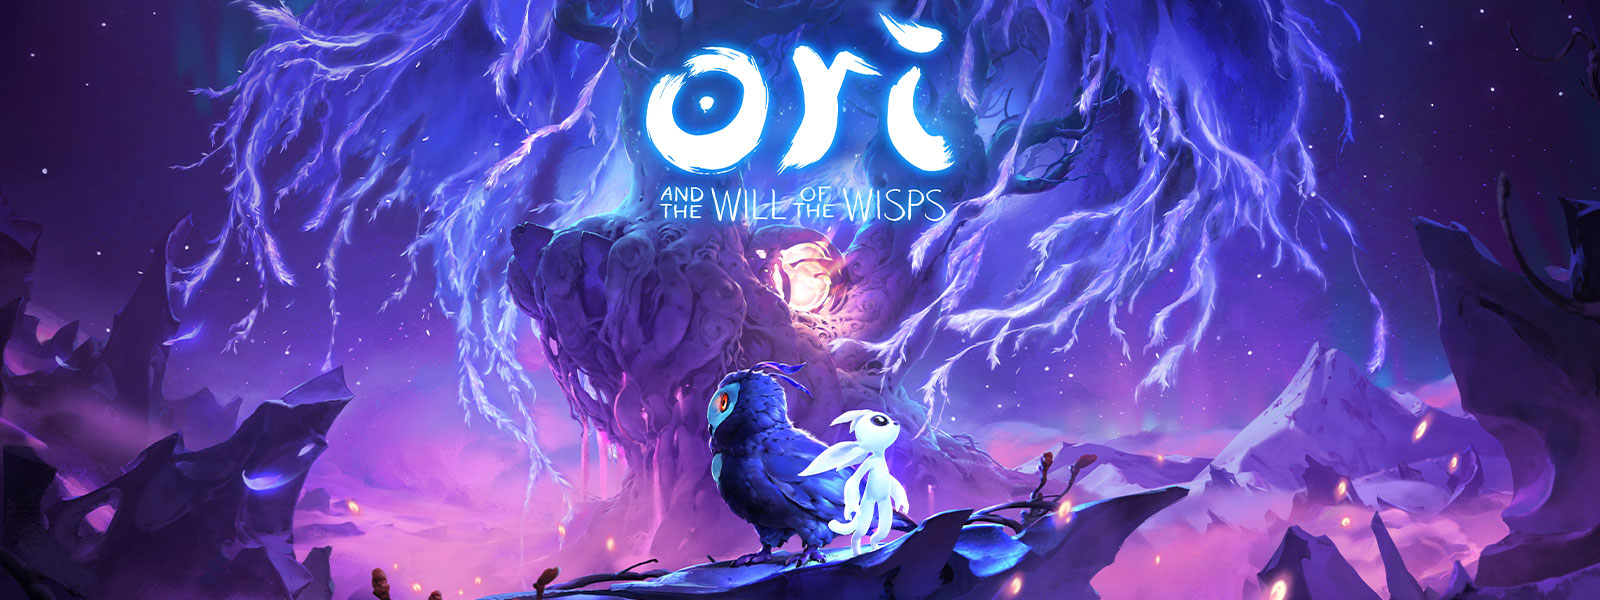 Ori and the Will of the Wisps, Ori in piedi accanto a un gufo davanti a un fantasioso albero viola